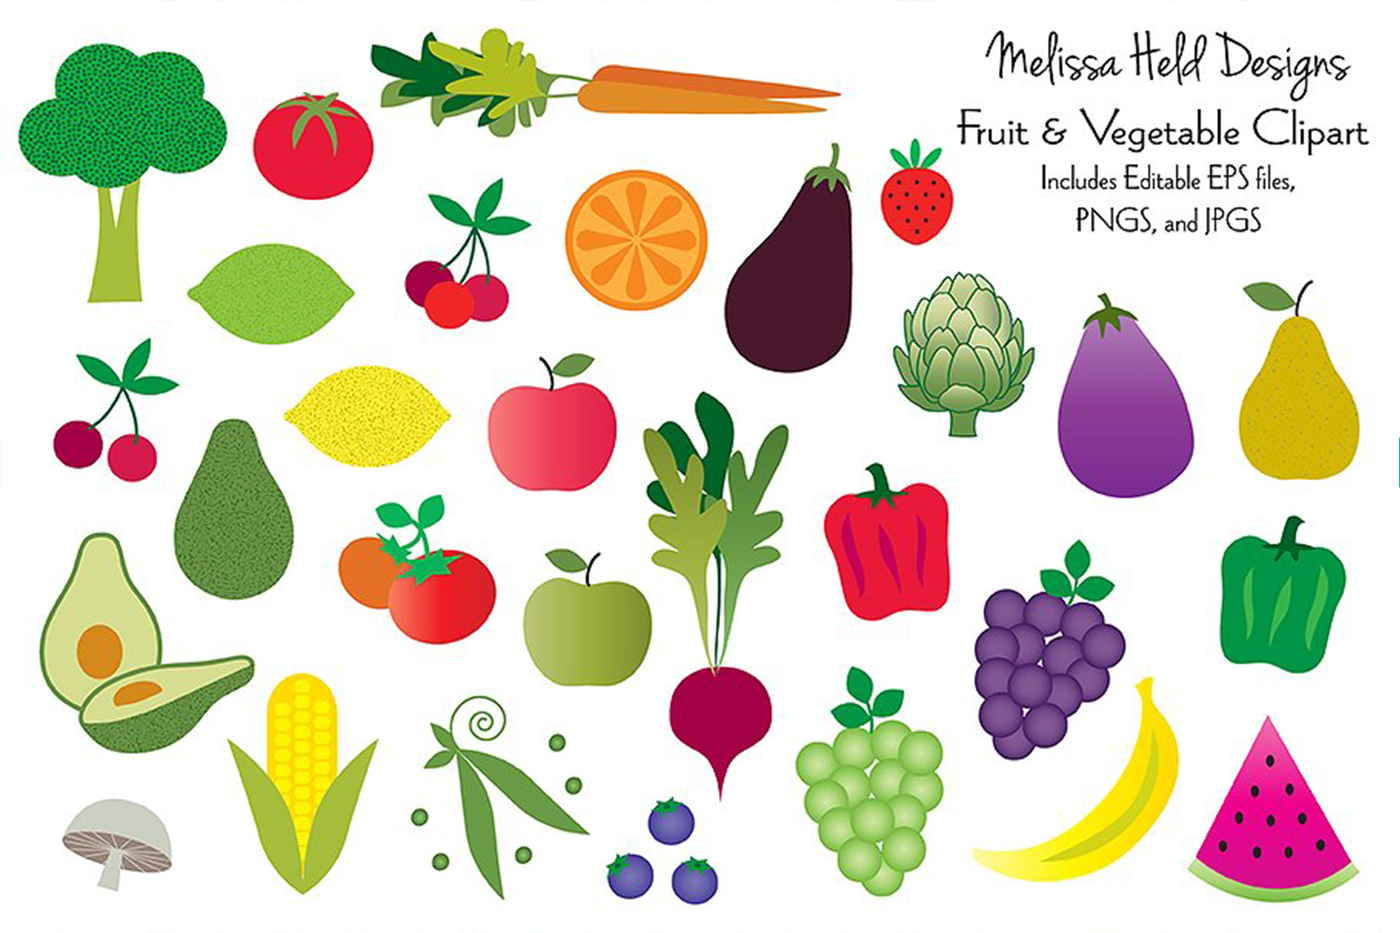 Fruits and Vegetables Clipart By Melissa Held Designs.